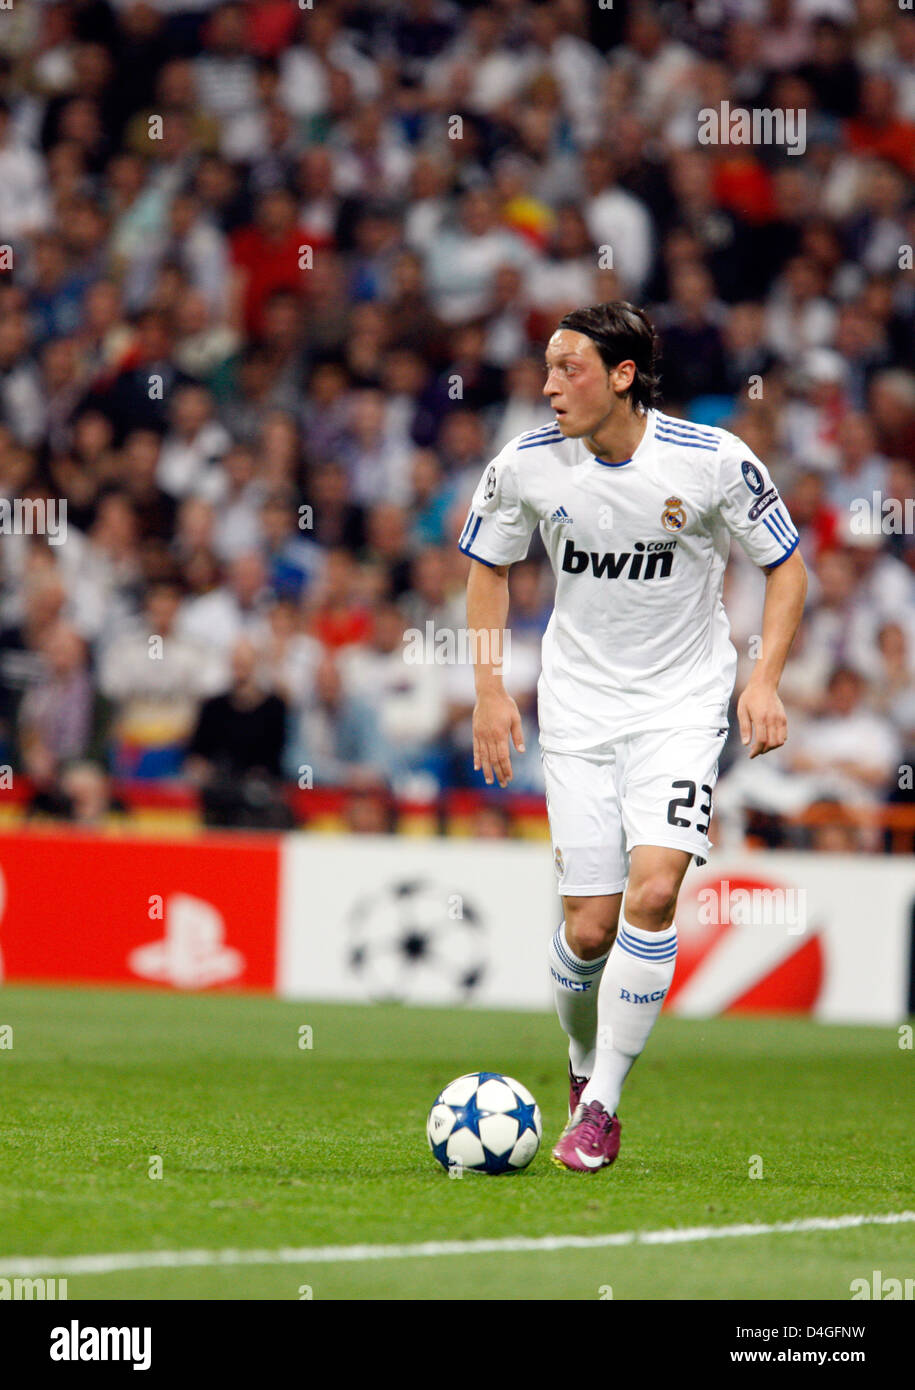 Madrid, Mesut Oezil, Real Madrid CF, the semifinals of the UEFA Champions League - Stock Image